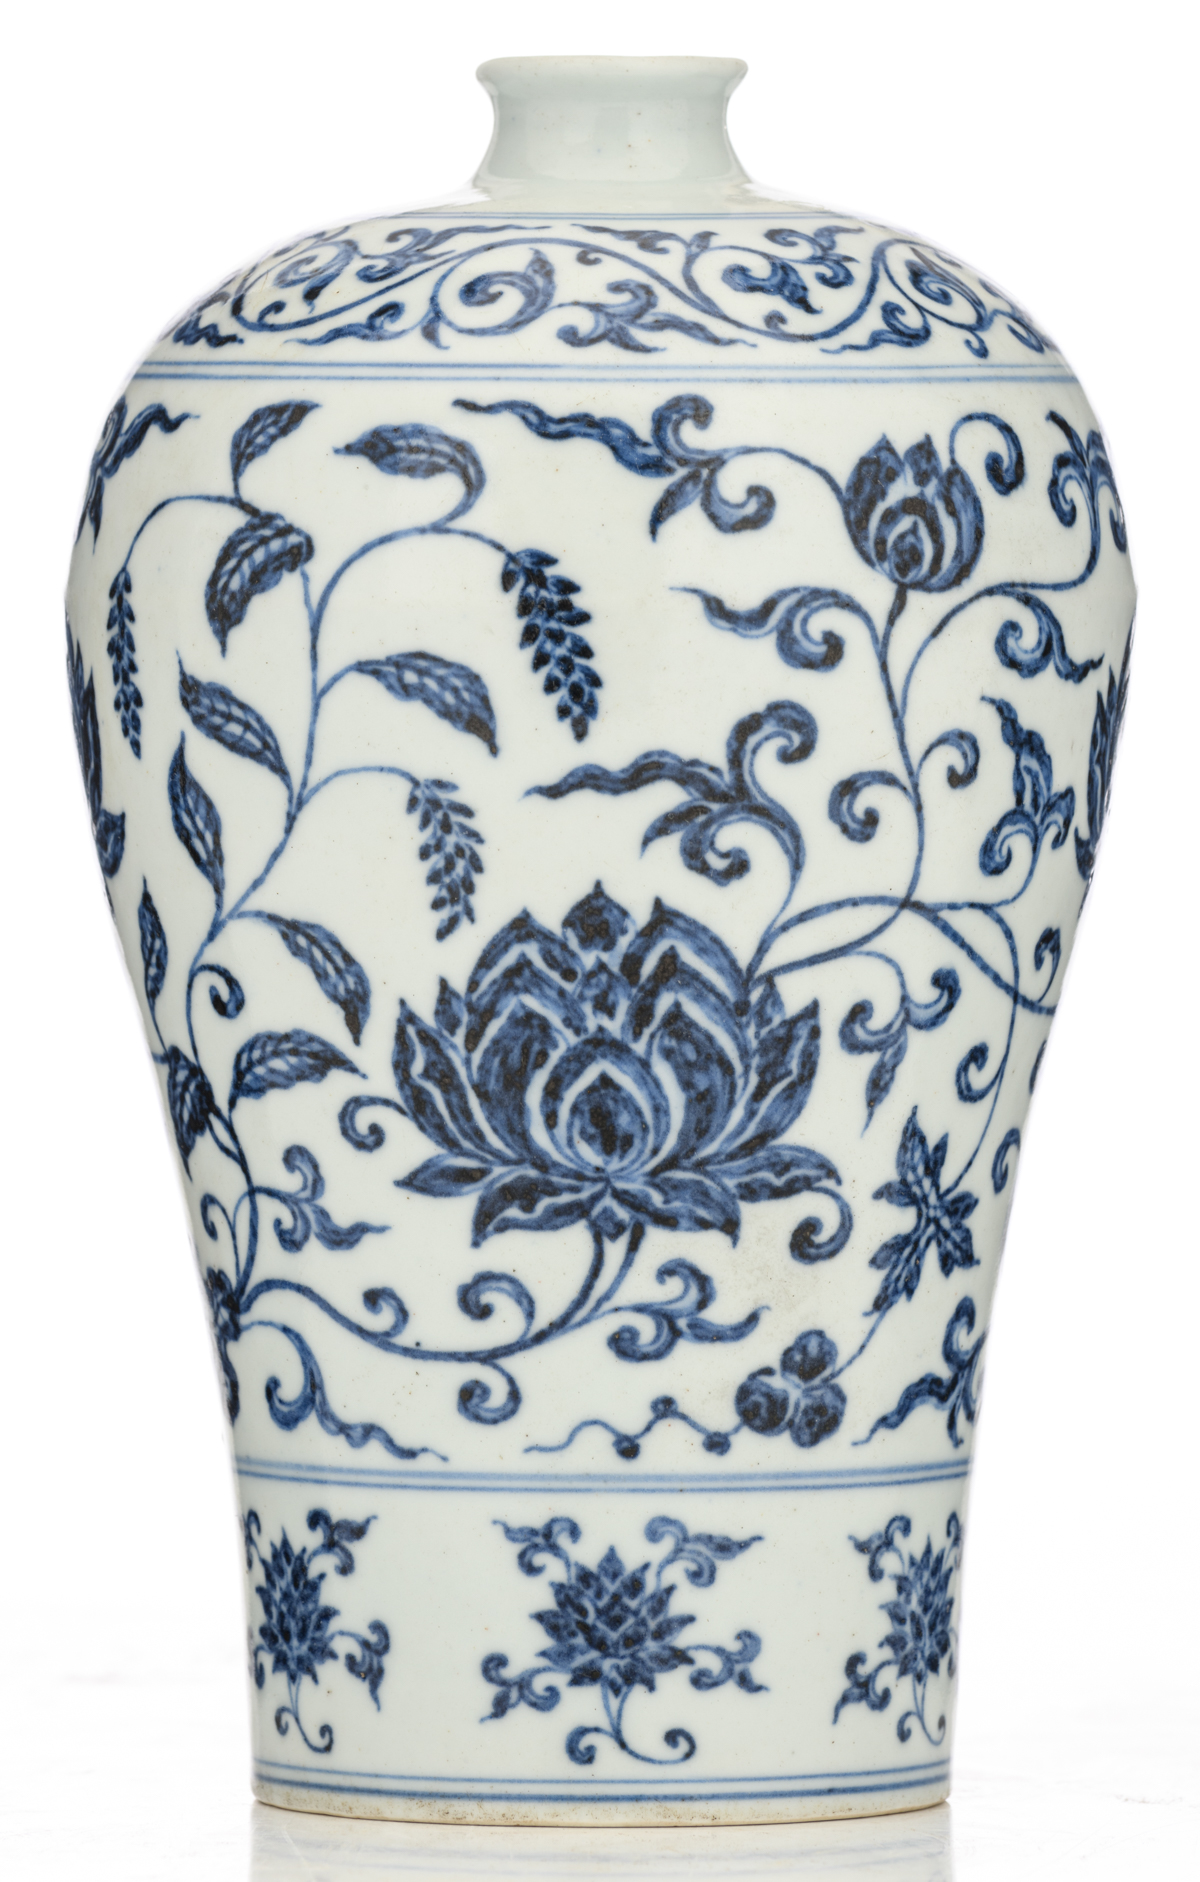 Lot 42 - A Chinese blue and white meiping vase, decorated with scrolling lotus, H 24,5 cm